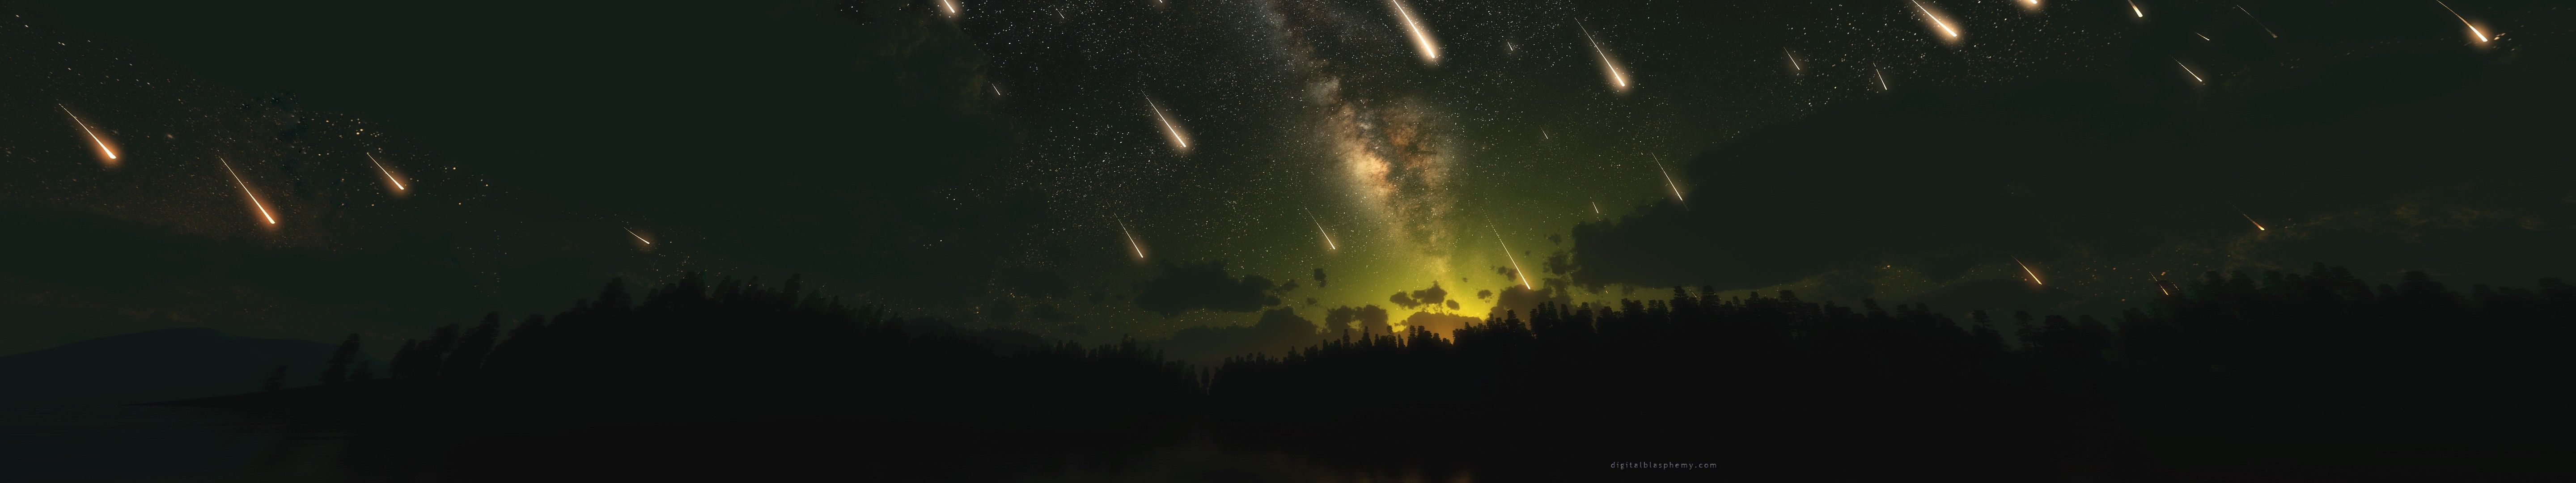 5760x1080 multiple display, #meteors, #shooting stars, #stars, #sky, #space ...